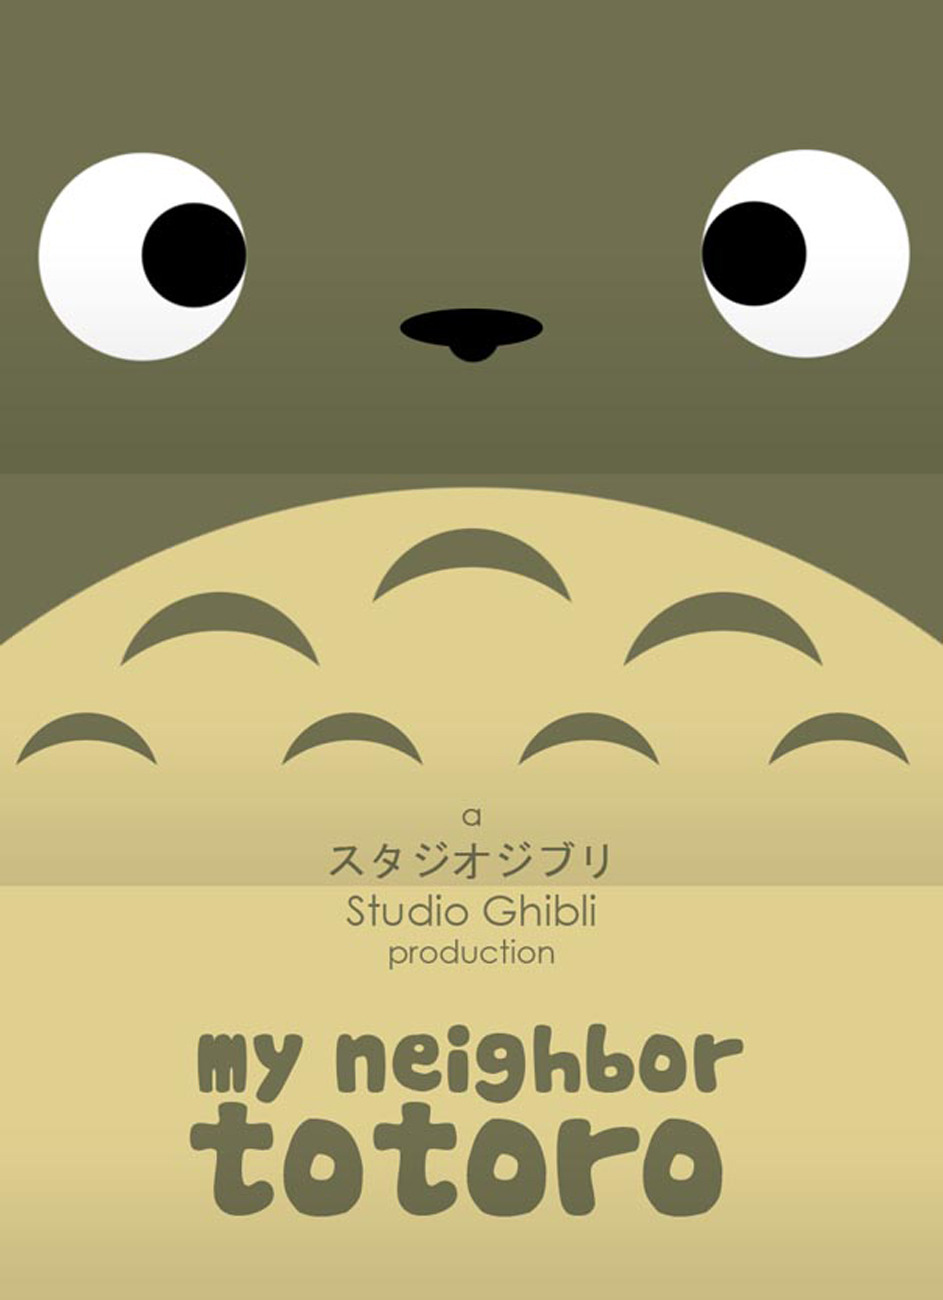 Hayao Miyazaki Minimalist Poster Collection Ok, the minimalist poster trend is already old for me BUT I do love Hayao Miyazaki (and when graphic design merges with things I love - like anime!)